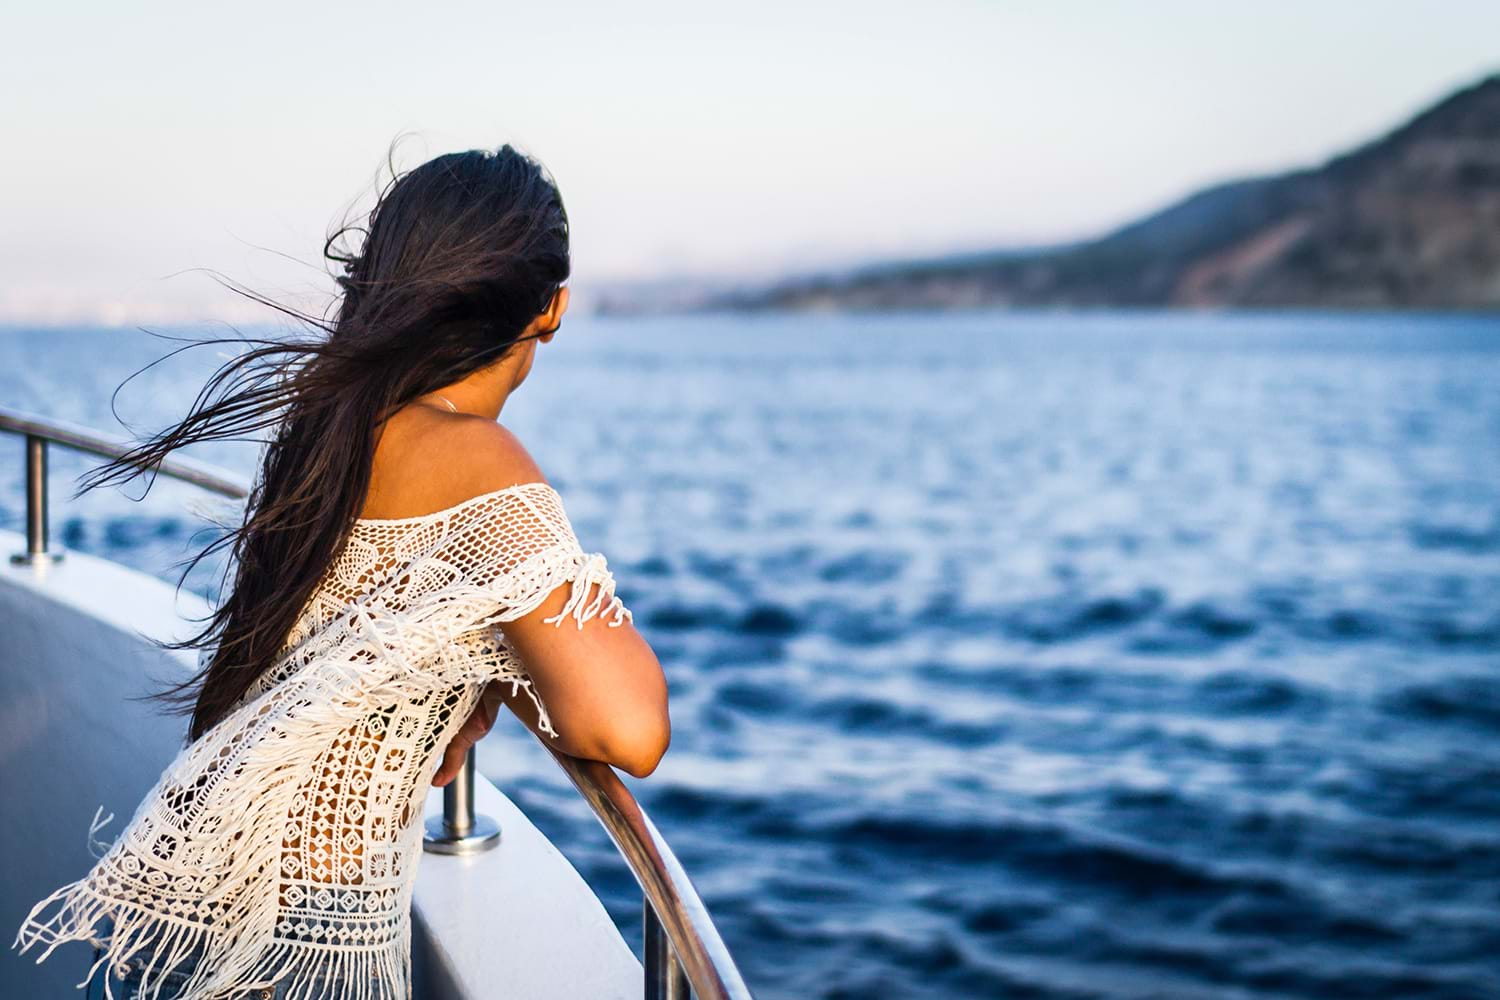 How to prevent seasickness - includes 19 remedies if you get